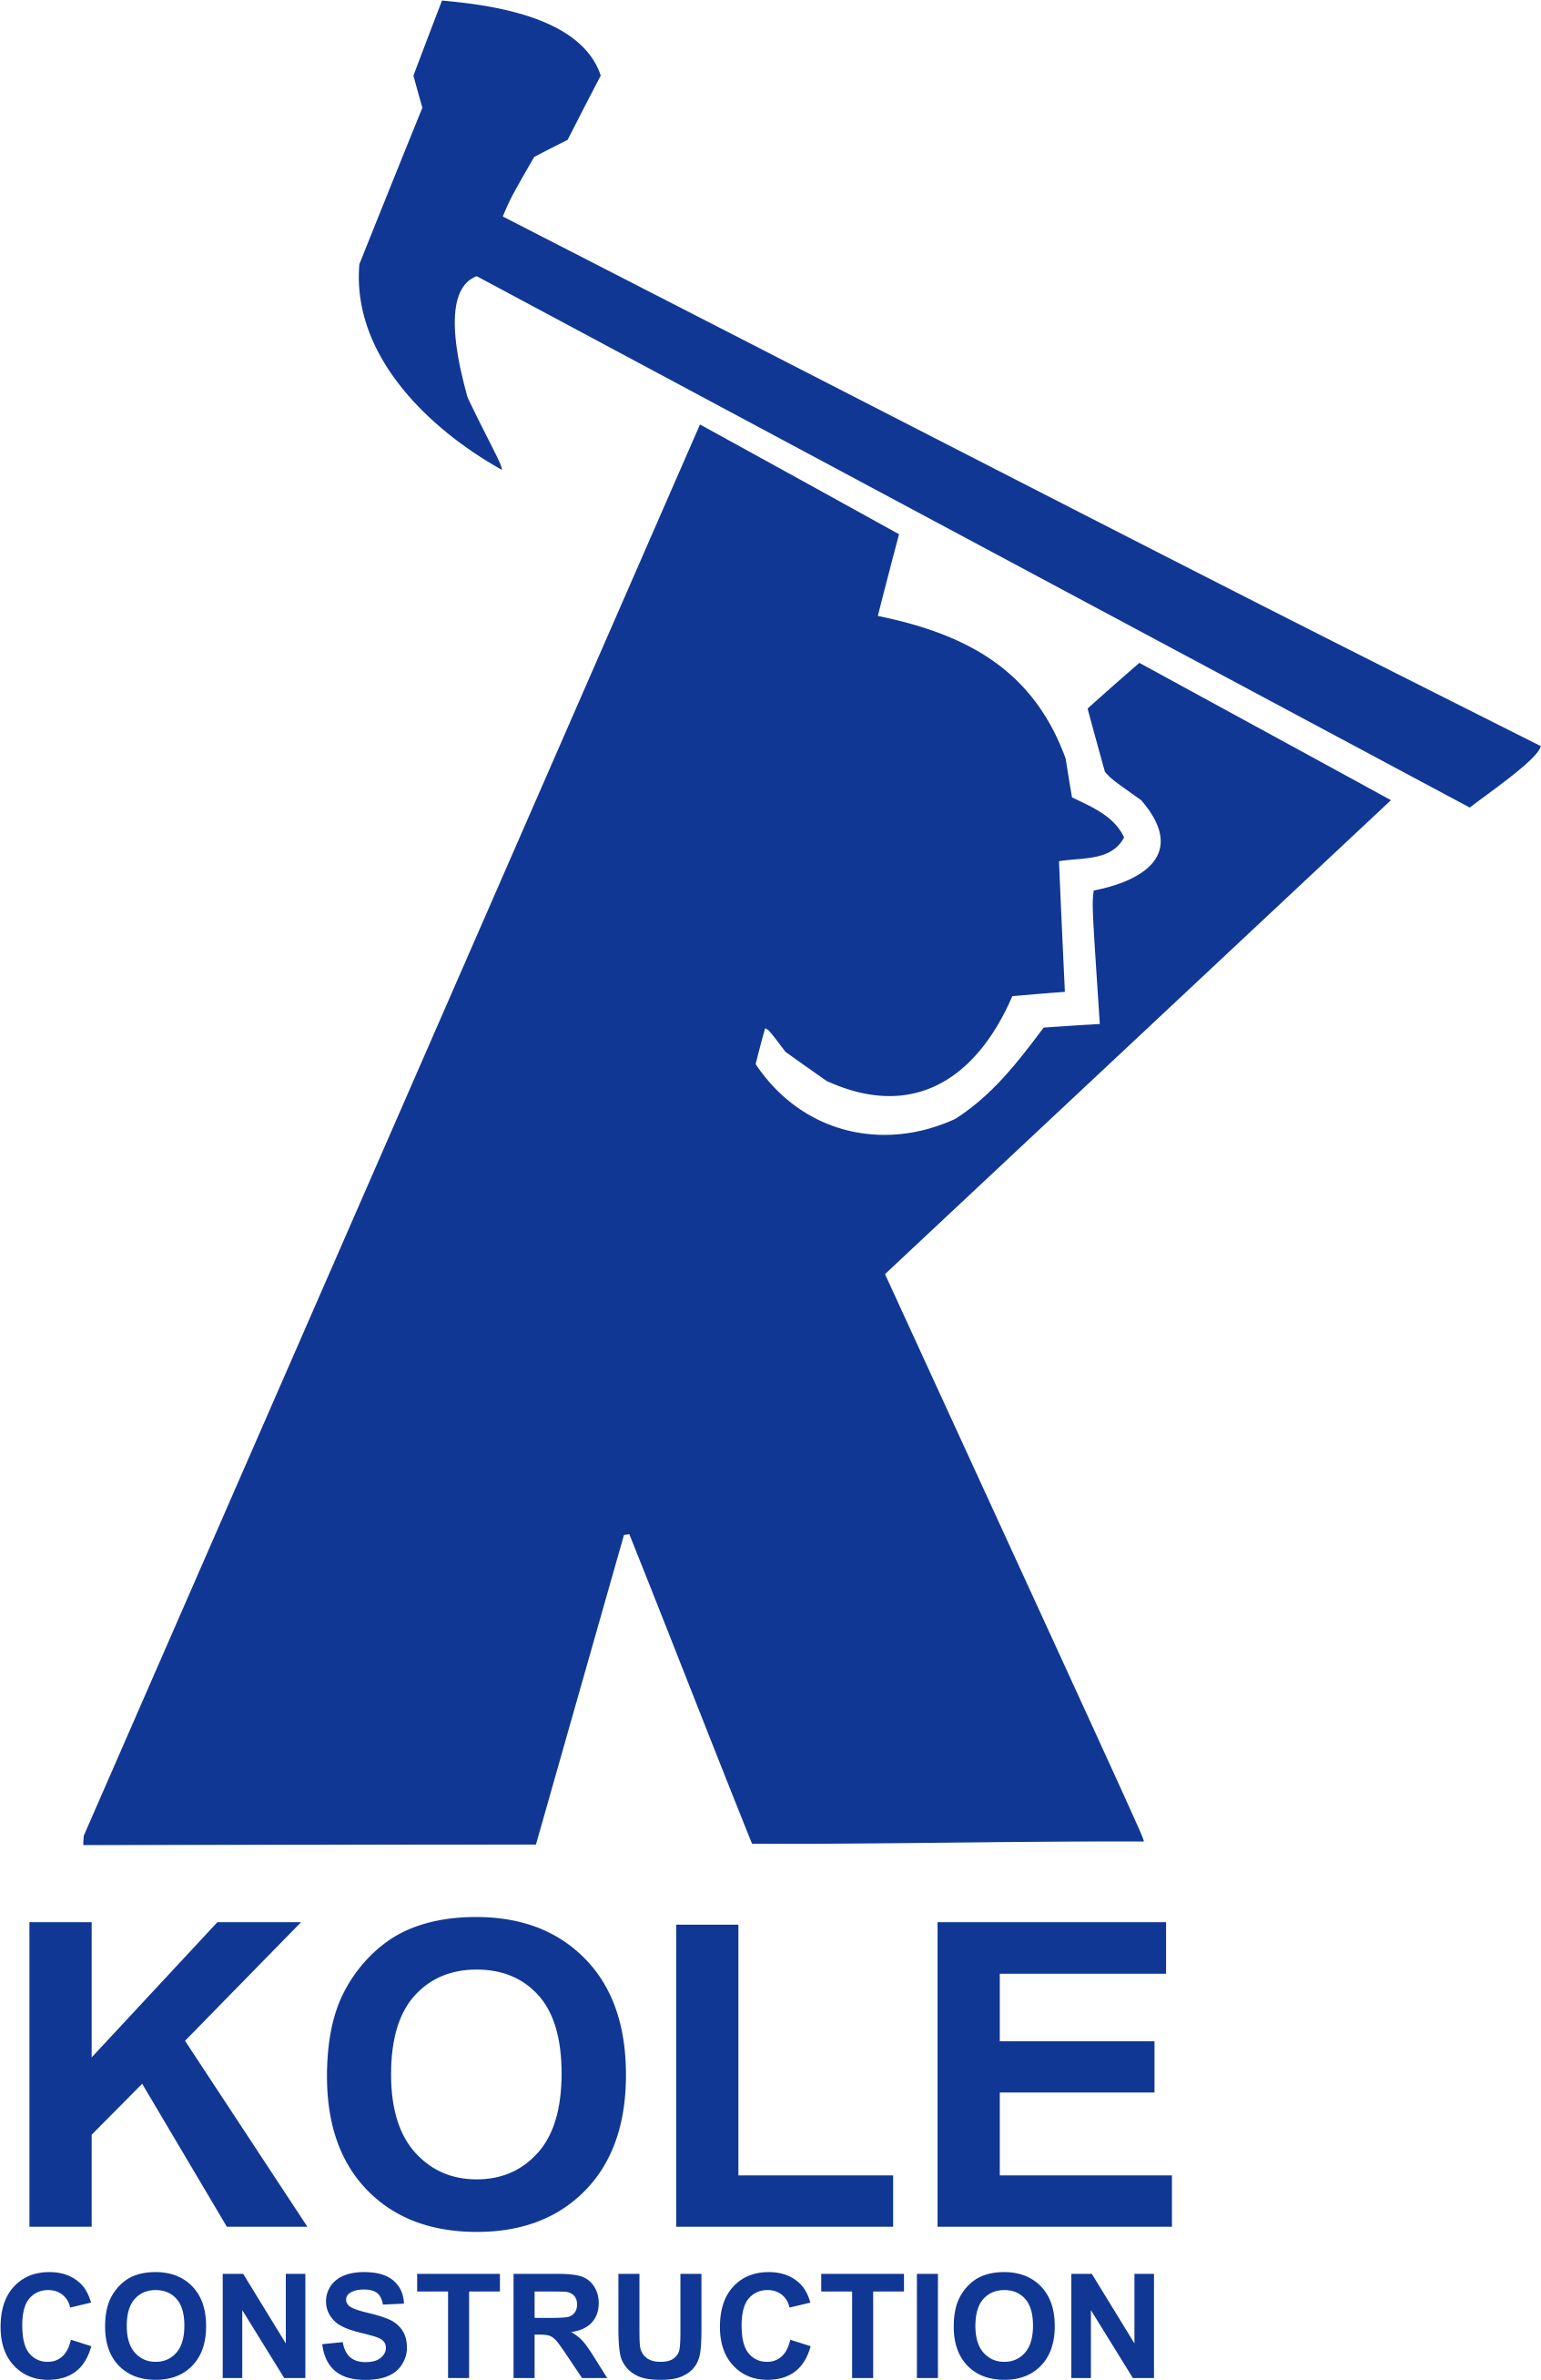 Kole Construction